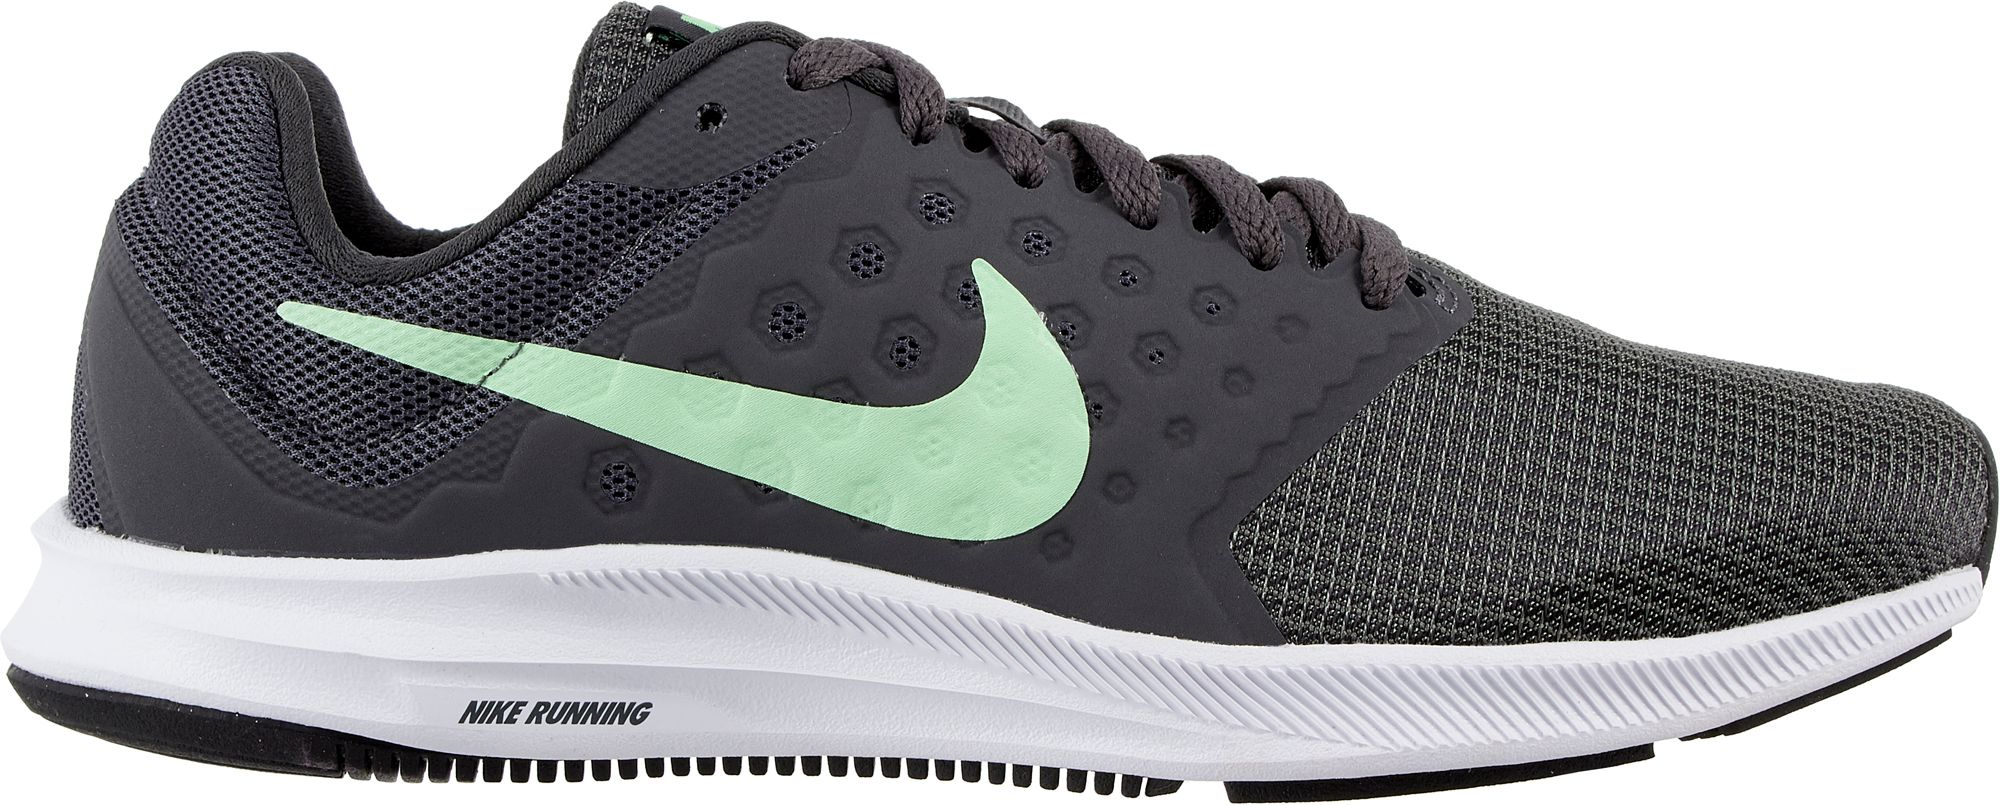 Nike Women's Downshifter 7 Running Shoes.